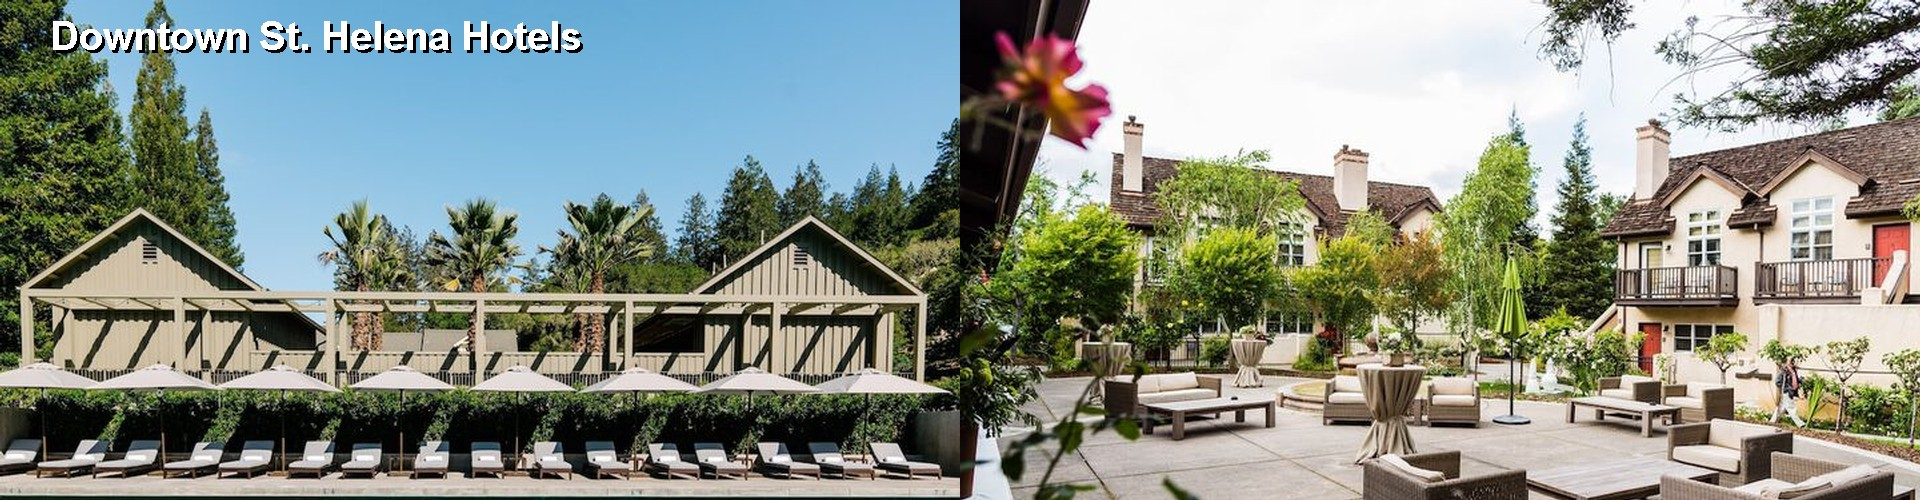 5 Best Hotels near Downtown St. Helena